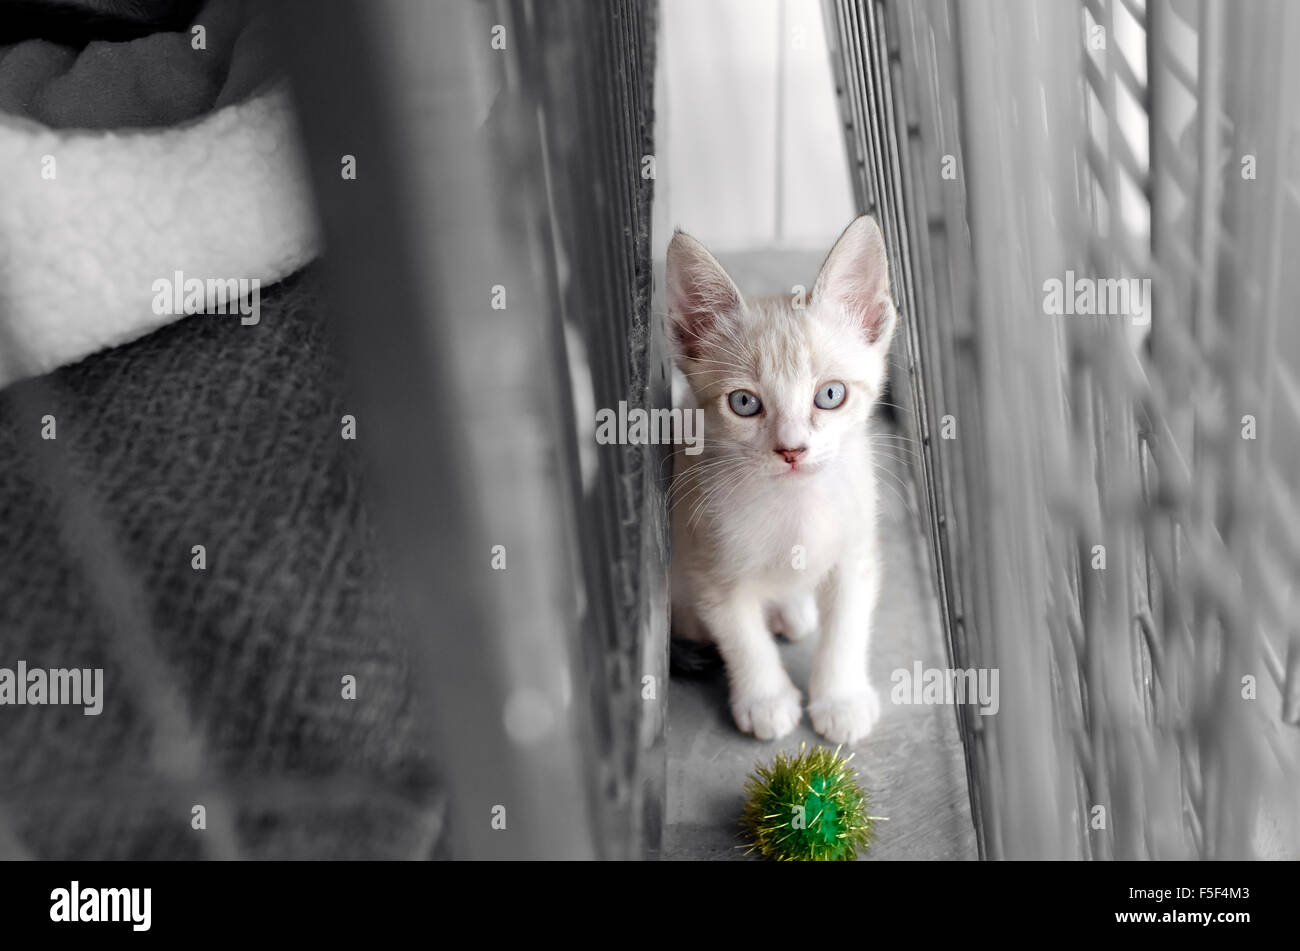 Shelter animal is a cute white kitten in an animal shelter looking